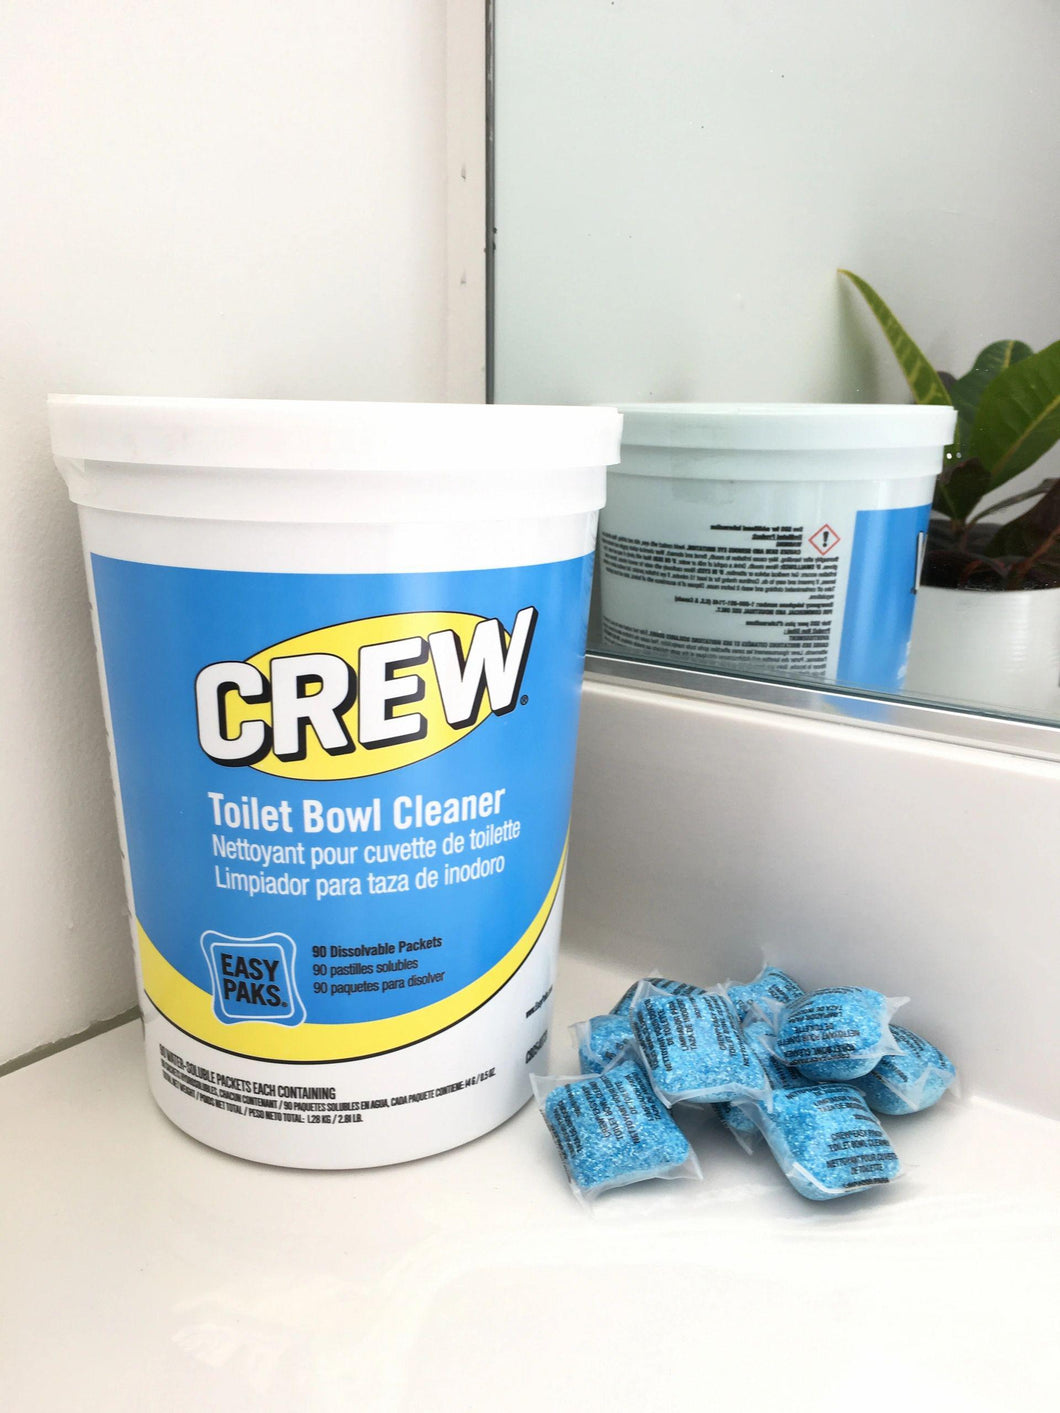 Crew Easypaks Toilet Bowl Cleaner (1 Tub-90packets)